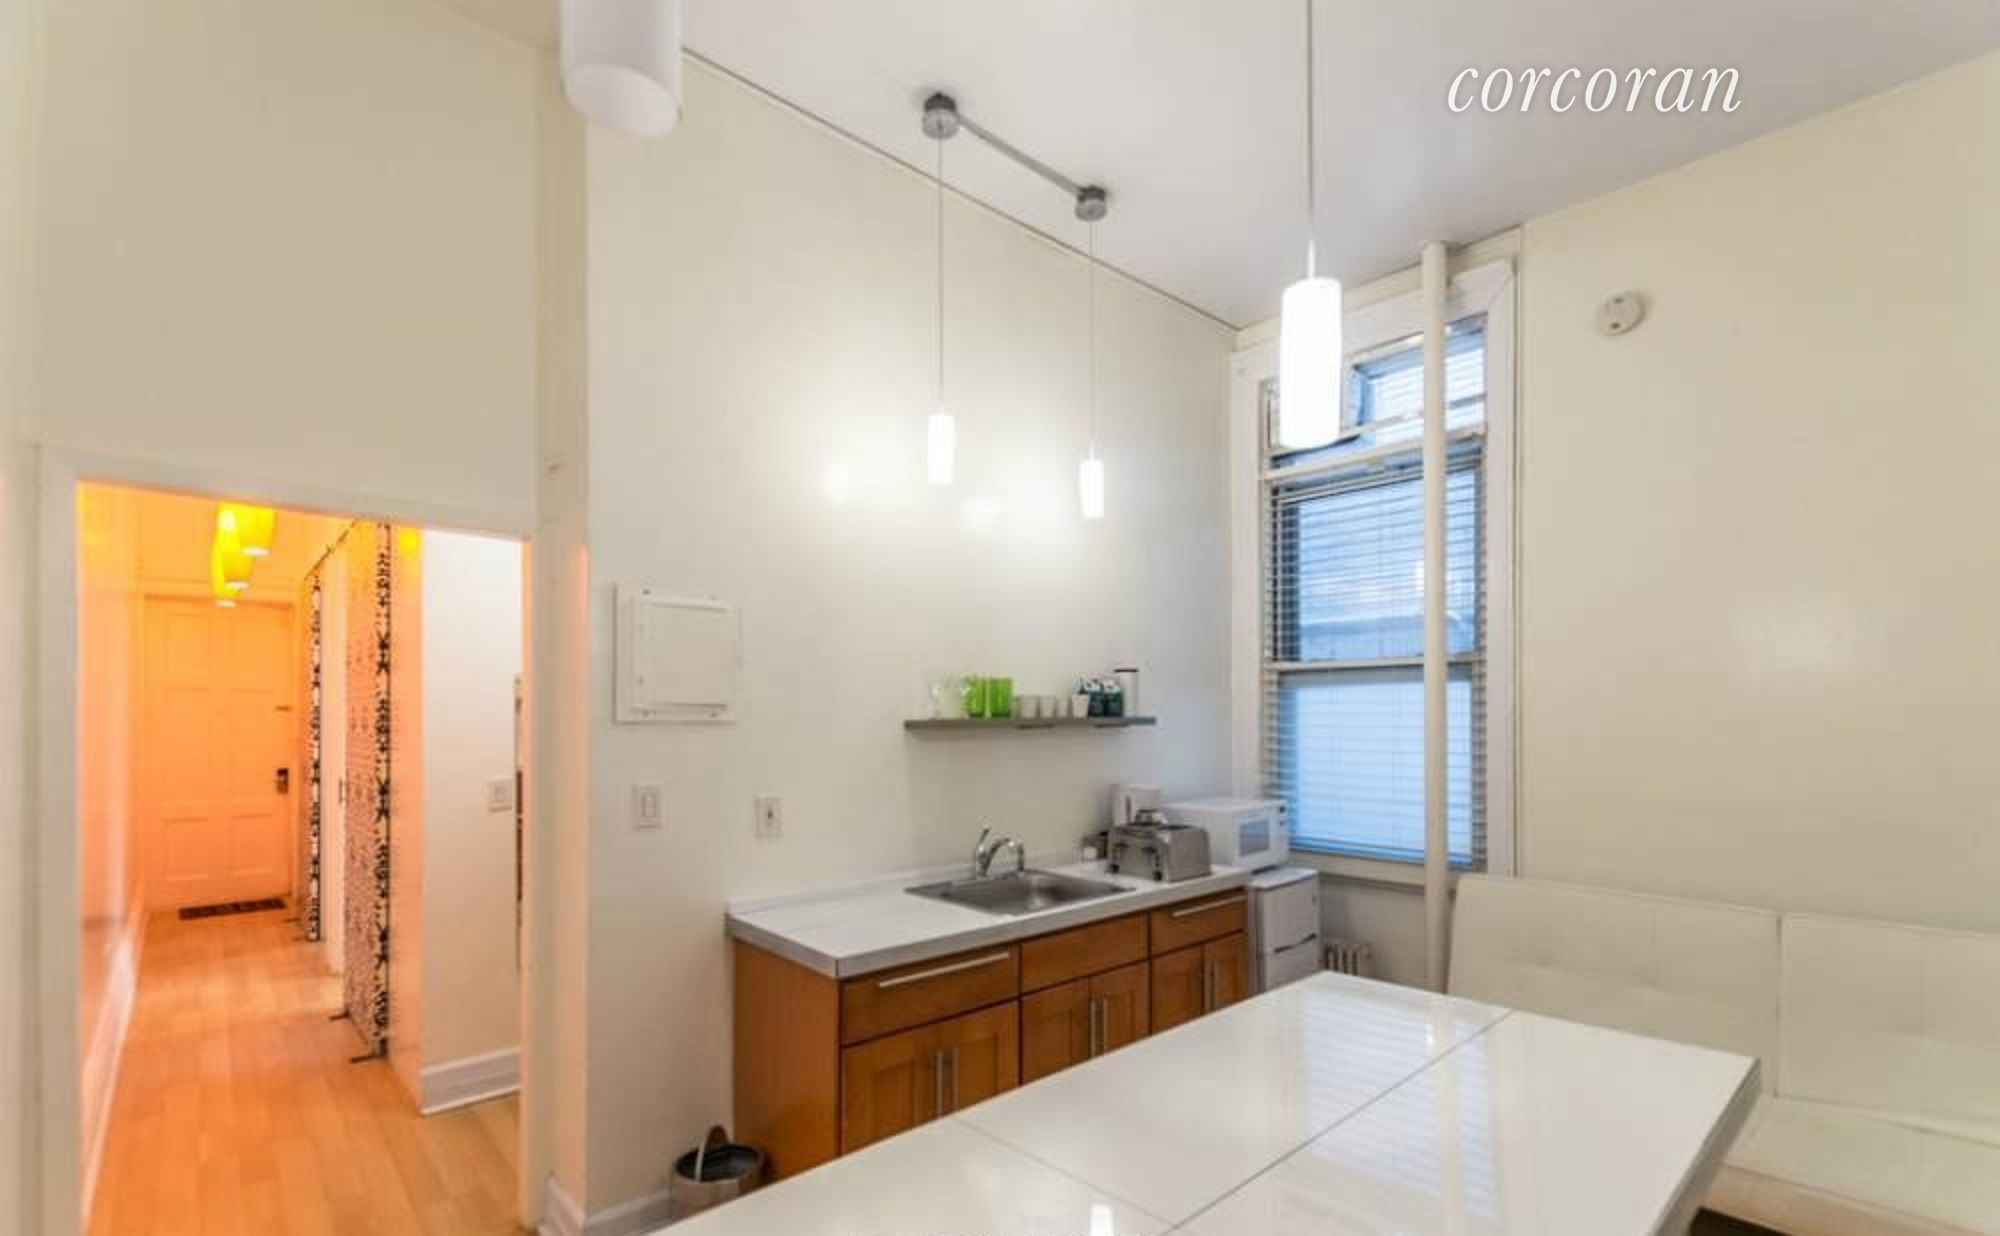 59 Fifth Avenue, Apt 2-B, Manhattan, New York 10003